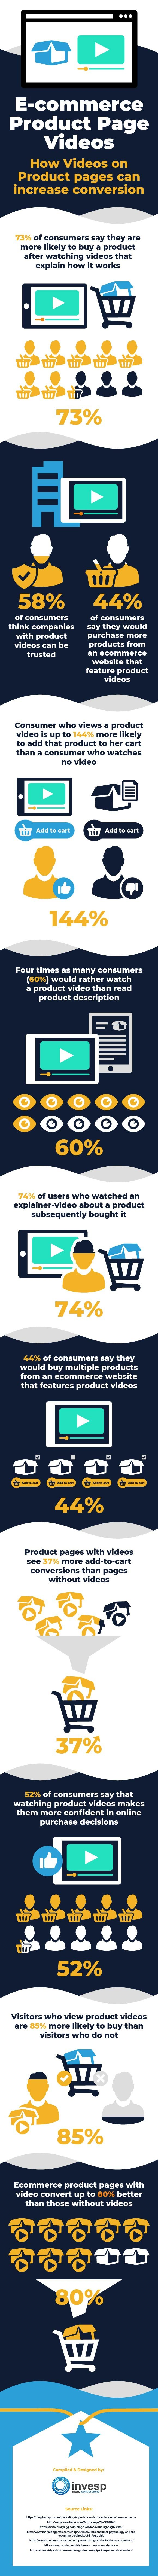 How Videos on Product Pages can Increase eCommerce Conversion [Infographic] | Social Media Today